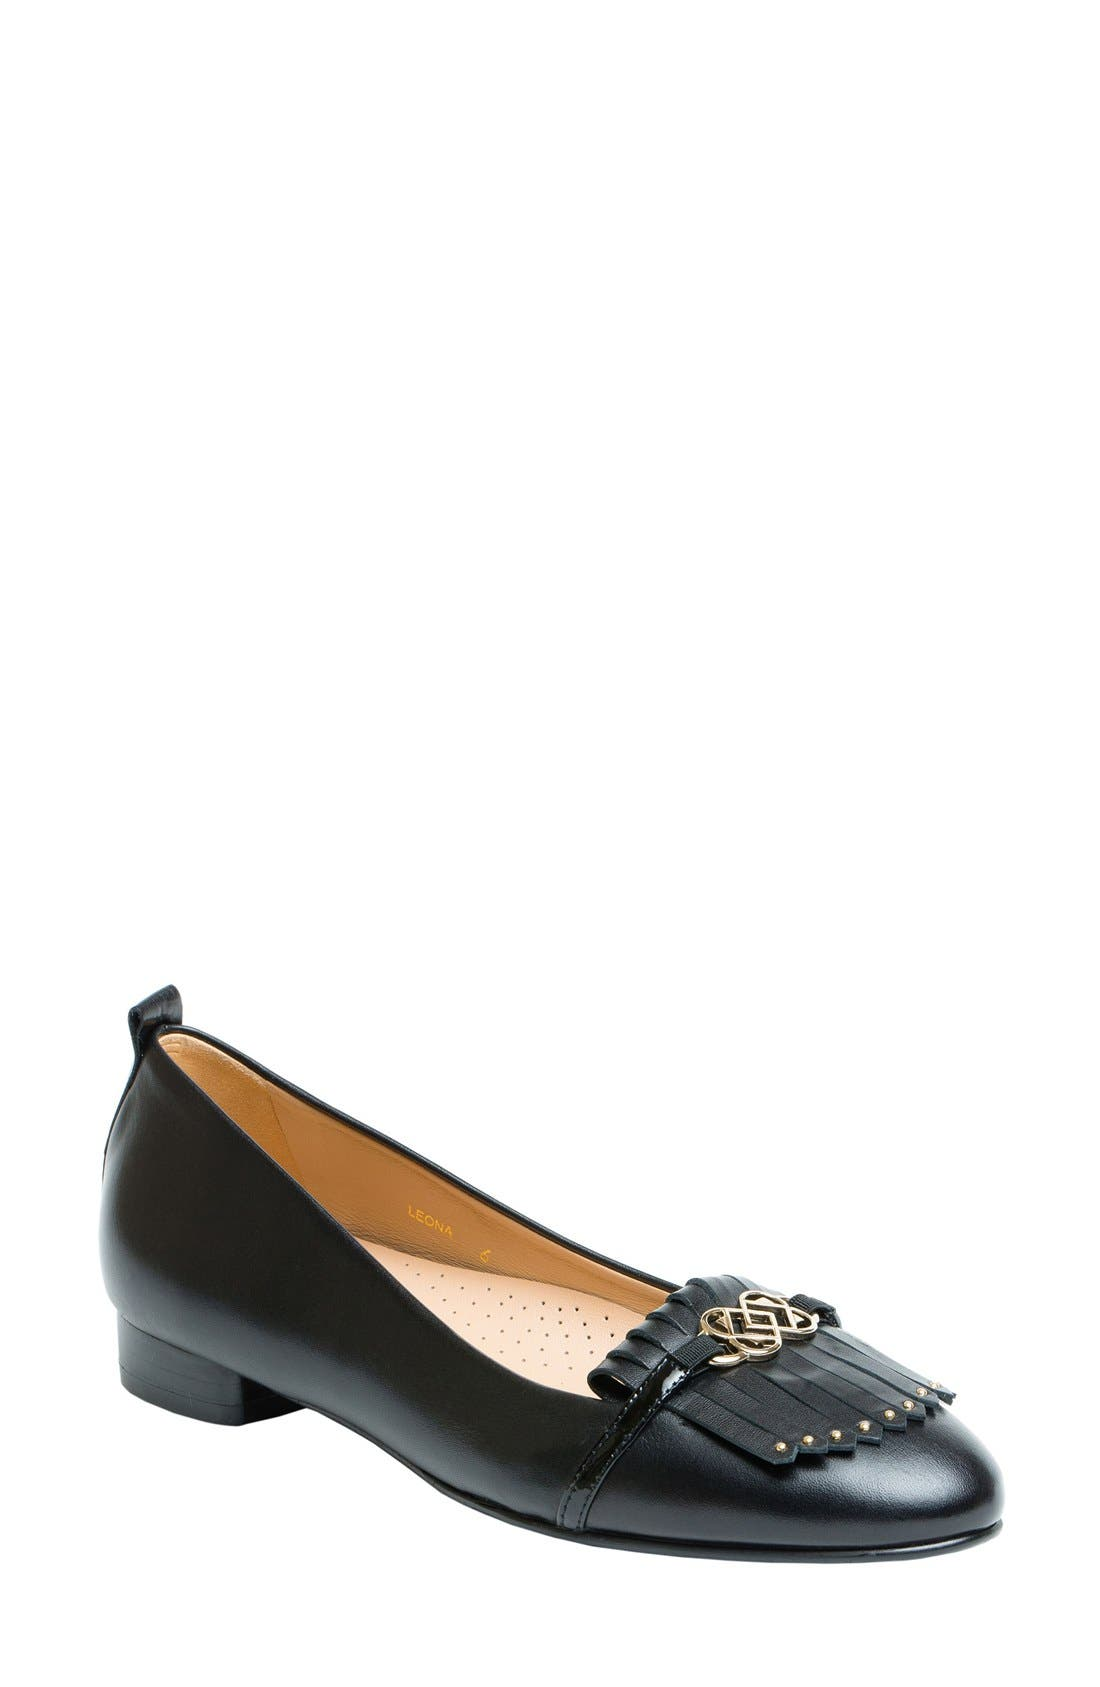 Leona Kiltie Loafer,                         Main,                         color, 001